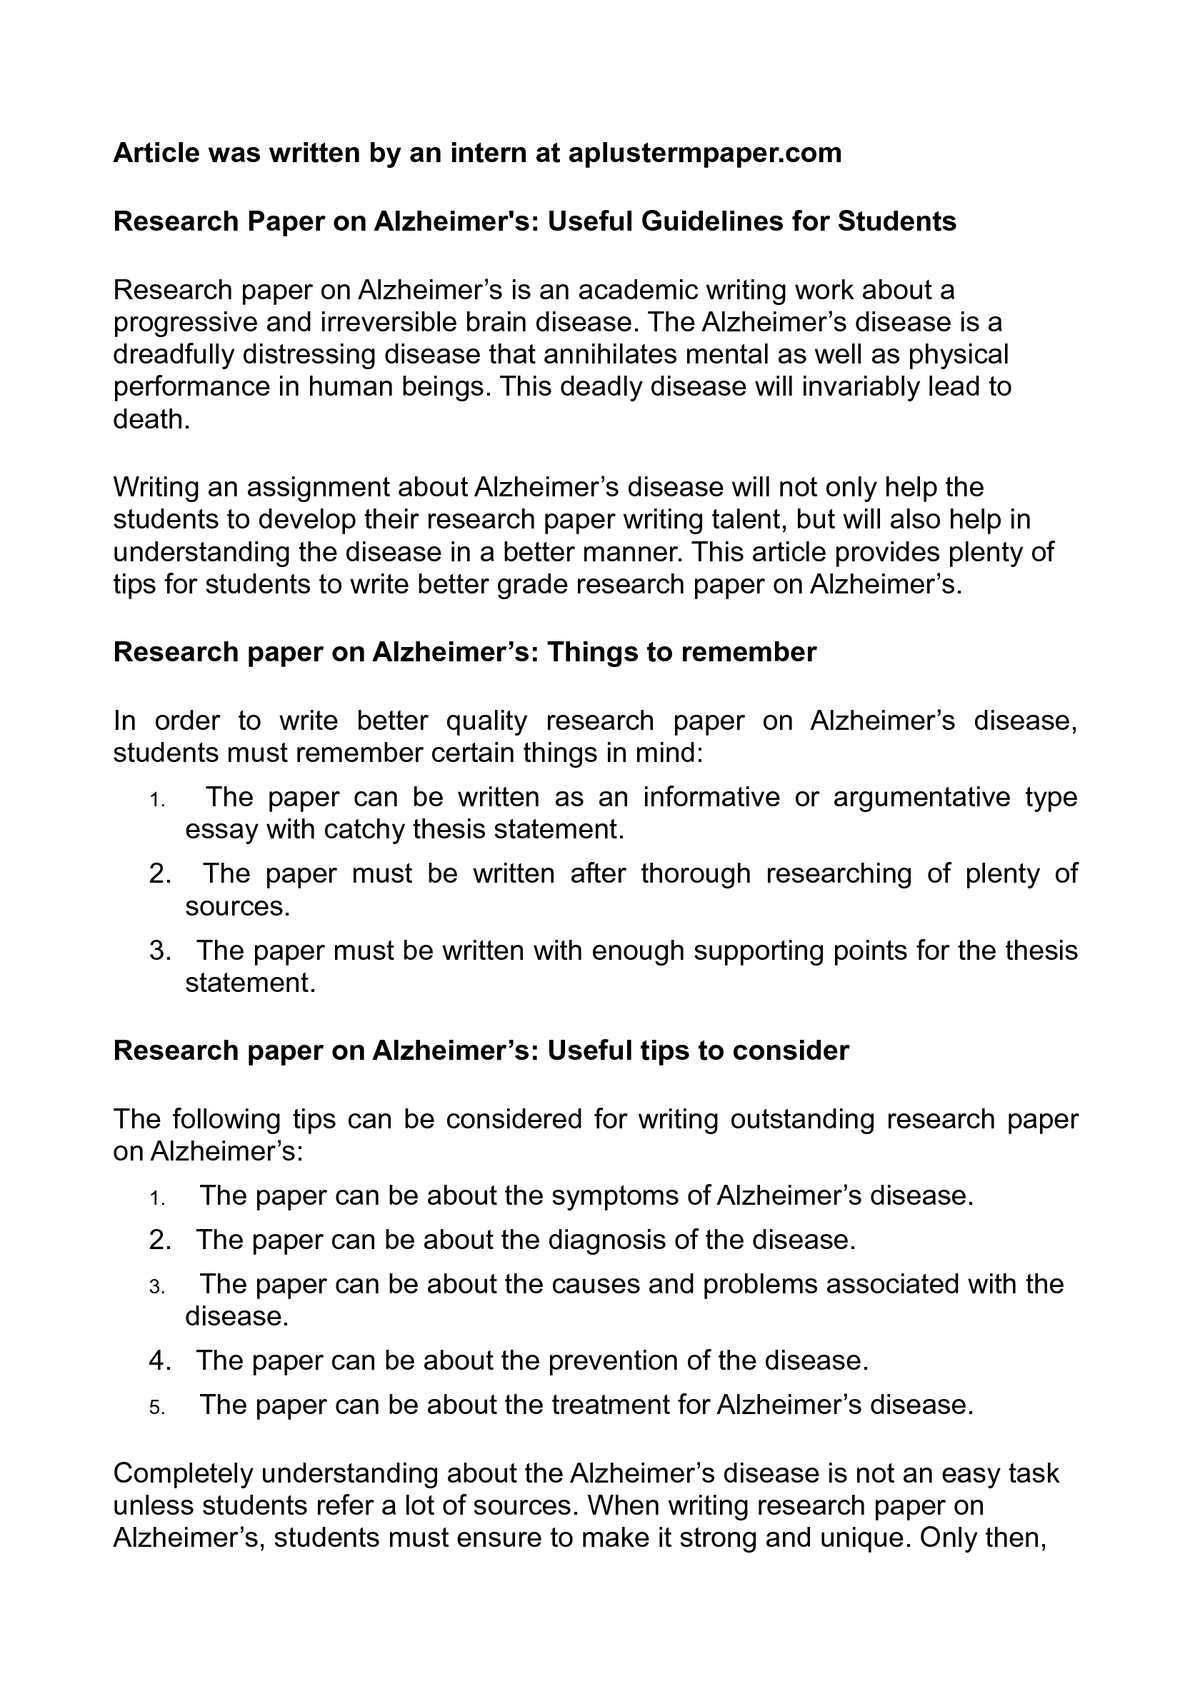 A Research Paper on Alzheimer's Disease - Free Essay Example | blogger.com